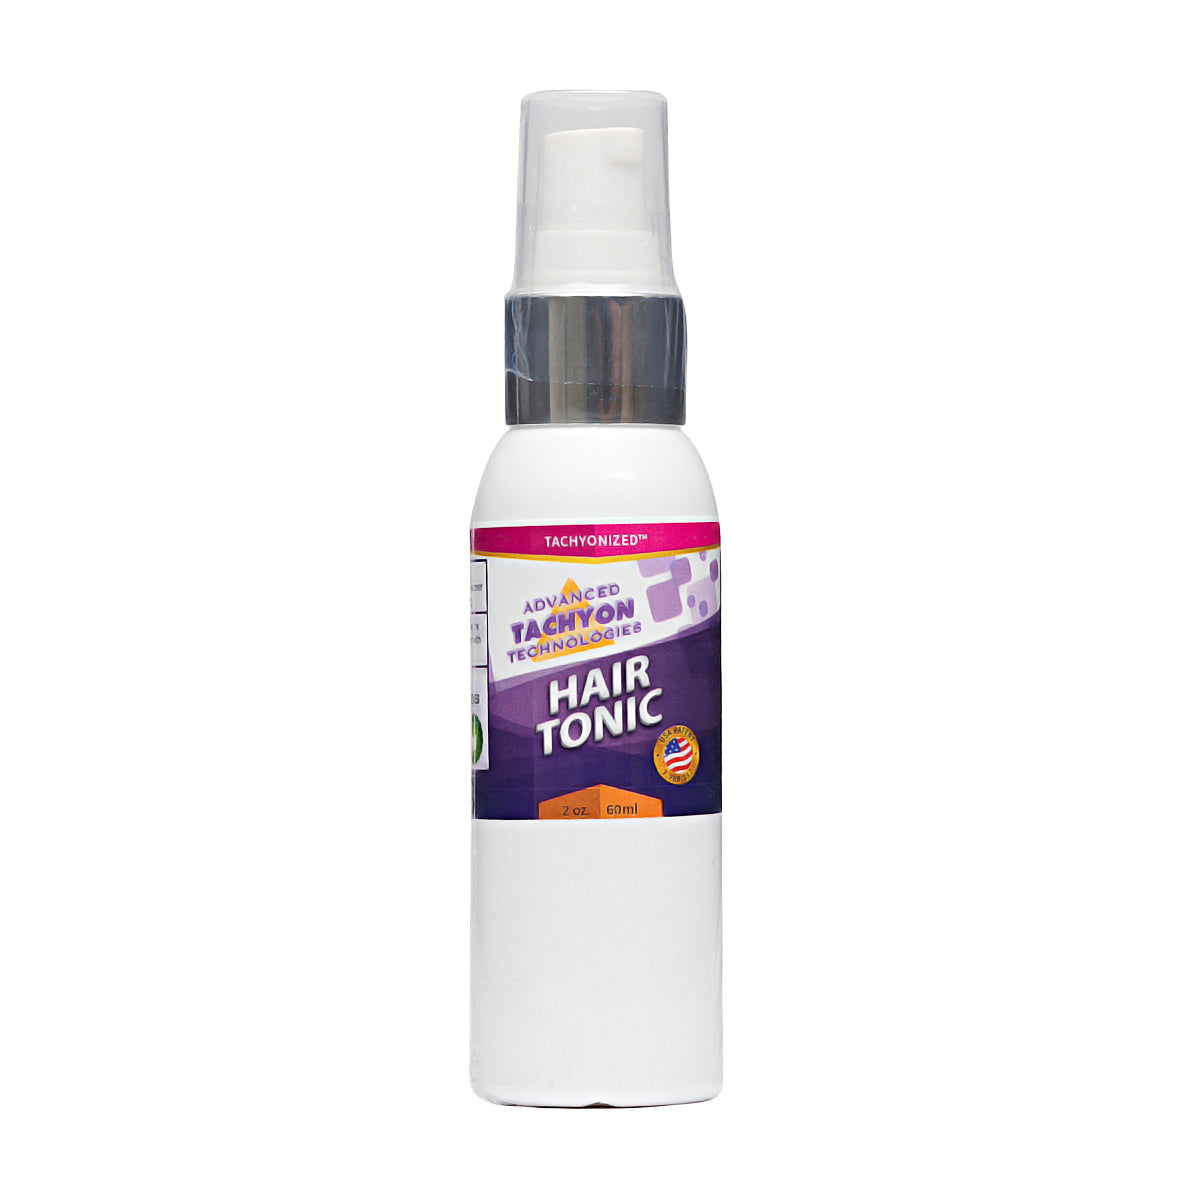 ATT Tachyonized Hair Tonic (60ml)